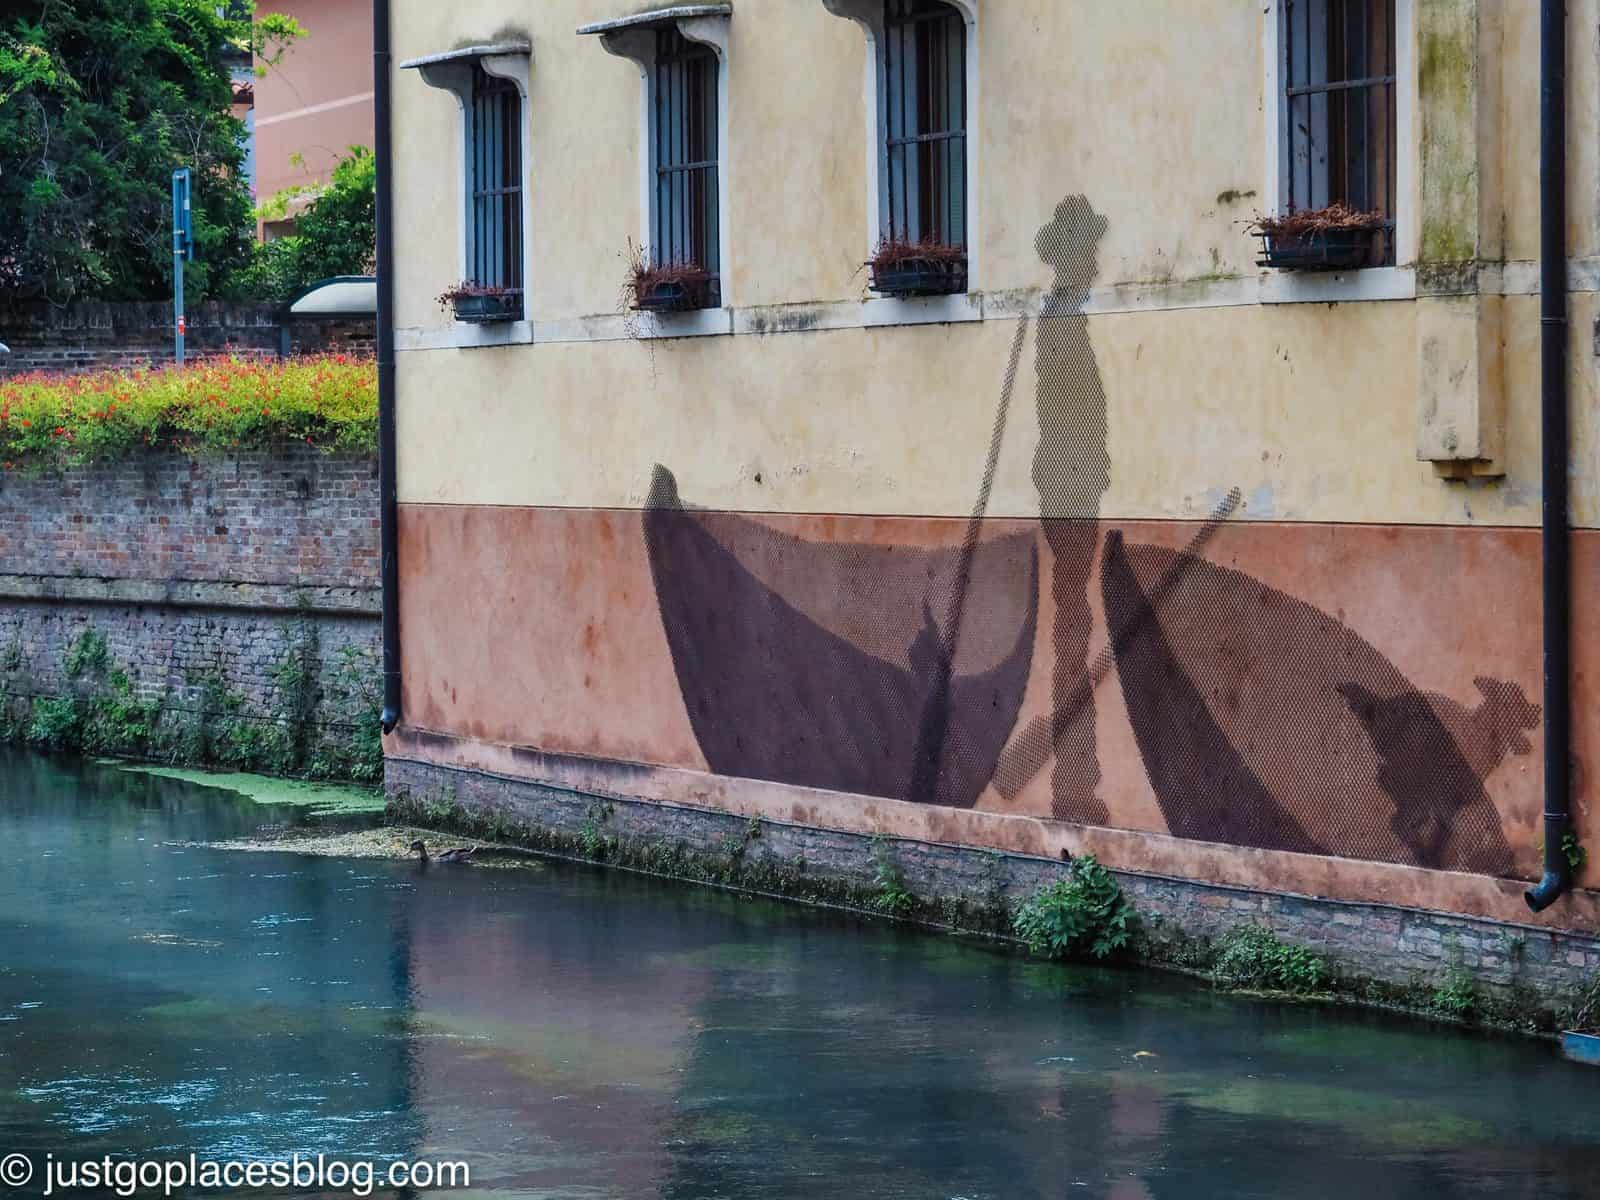 Street art of fisherman and nets canalised in Treviso